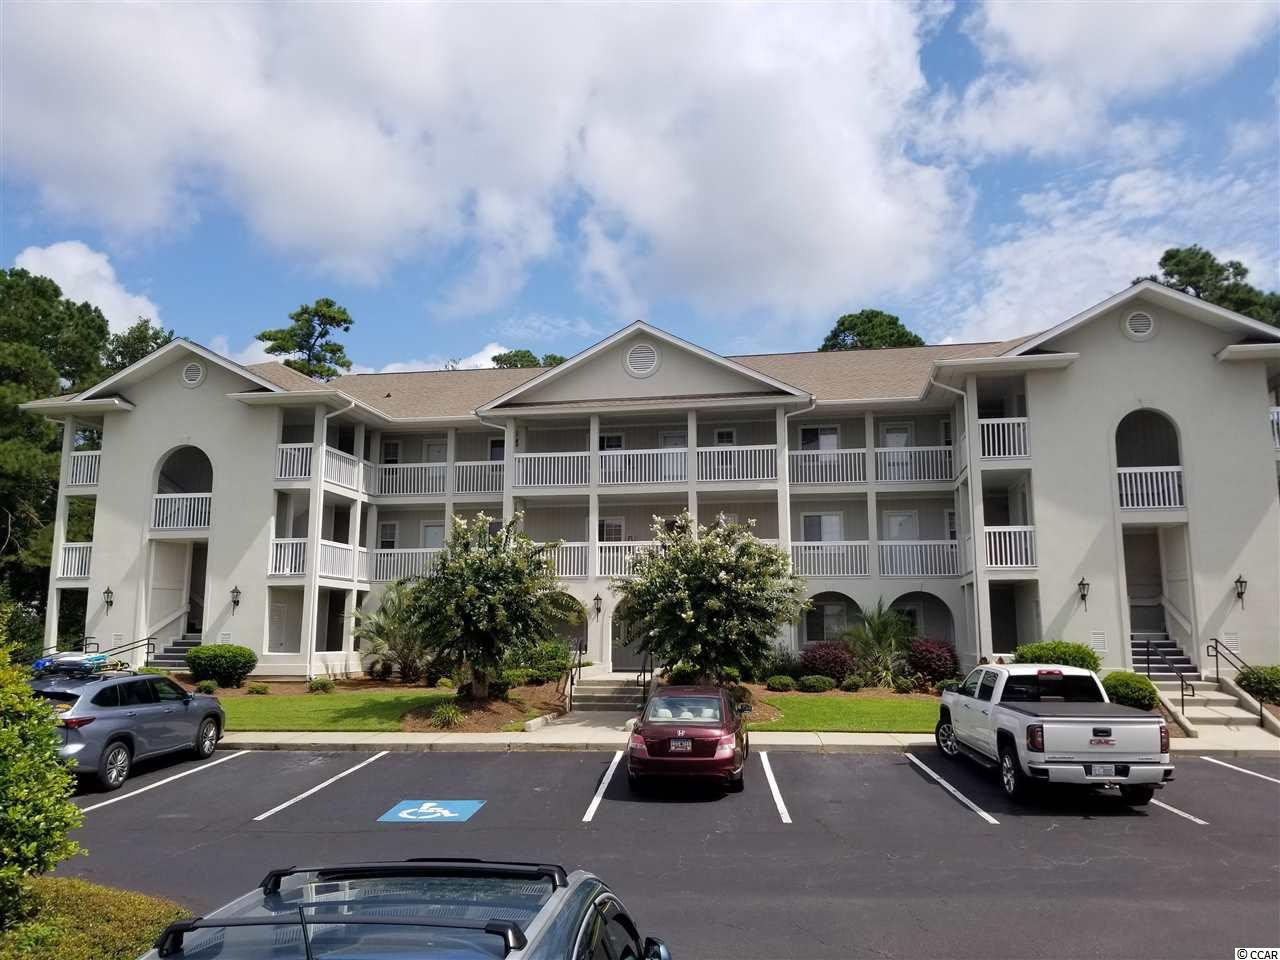 Incredible opportunity to purchase a 2nd floor unit with golf course views in Spinnaker Cove, which is tucked quietly along the Intracoastal Waterway in Little River. Sit back, relax and enjoy the breeze on the spacious screened porch overlooking the 18th fairway of The Valley at Eastport Golf Club. And then step inside and enjoy the cool air flowing from the 1-year-old heat & air system. This unit is clean and ready for a new owner, washer & dryer is included. Call your agent and schedule a showing today!